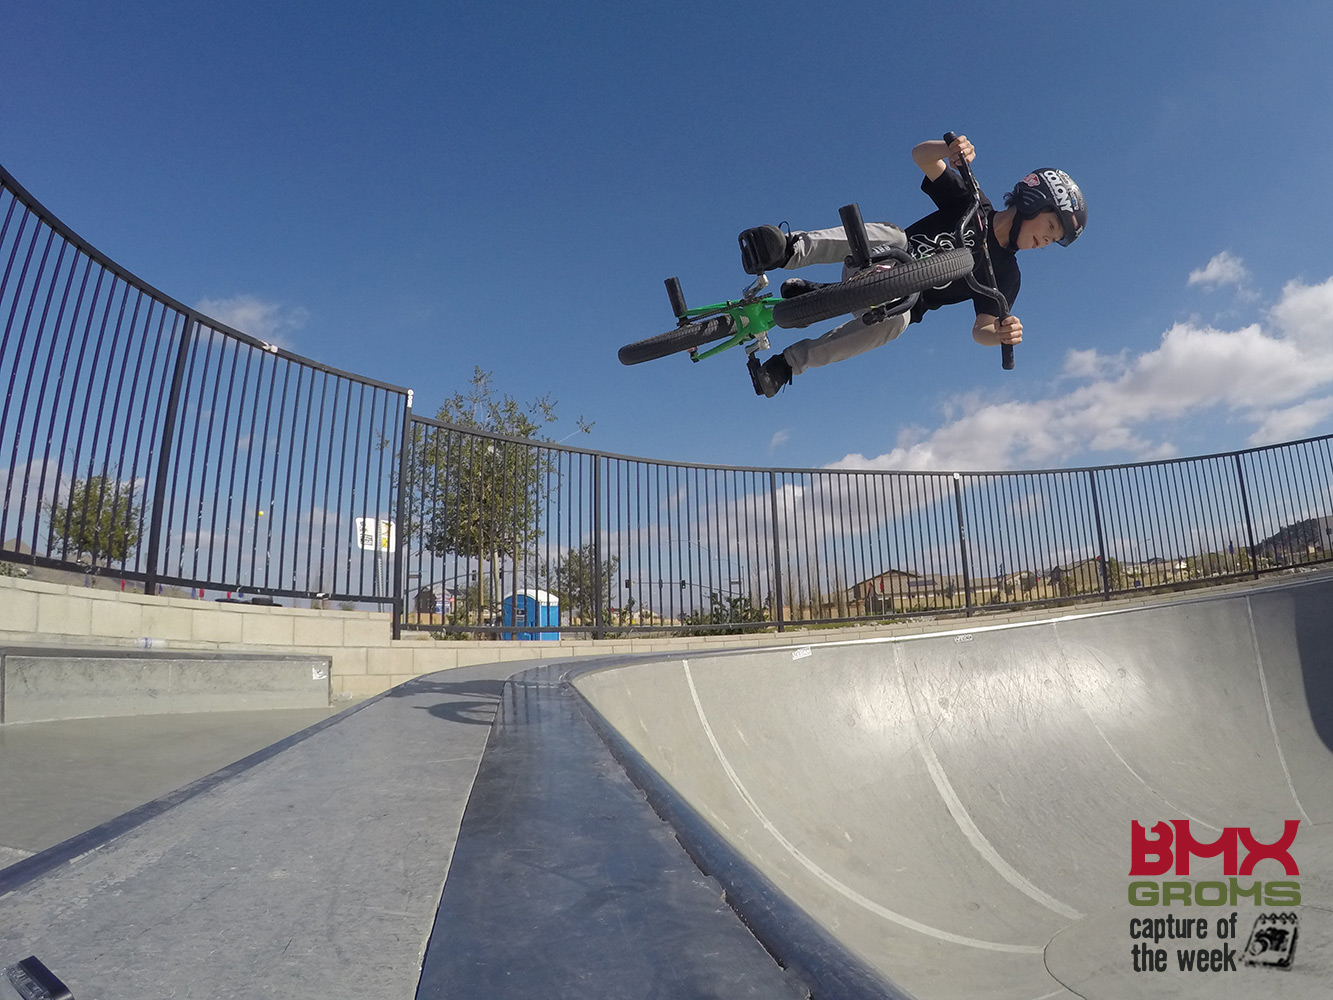 Ryder Lawrence BMX Capture of the Week Feb 18 2016